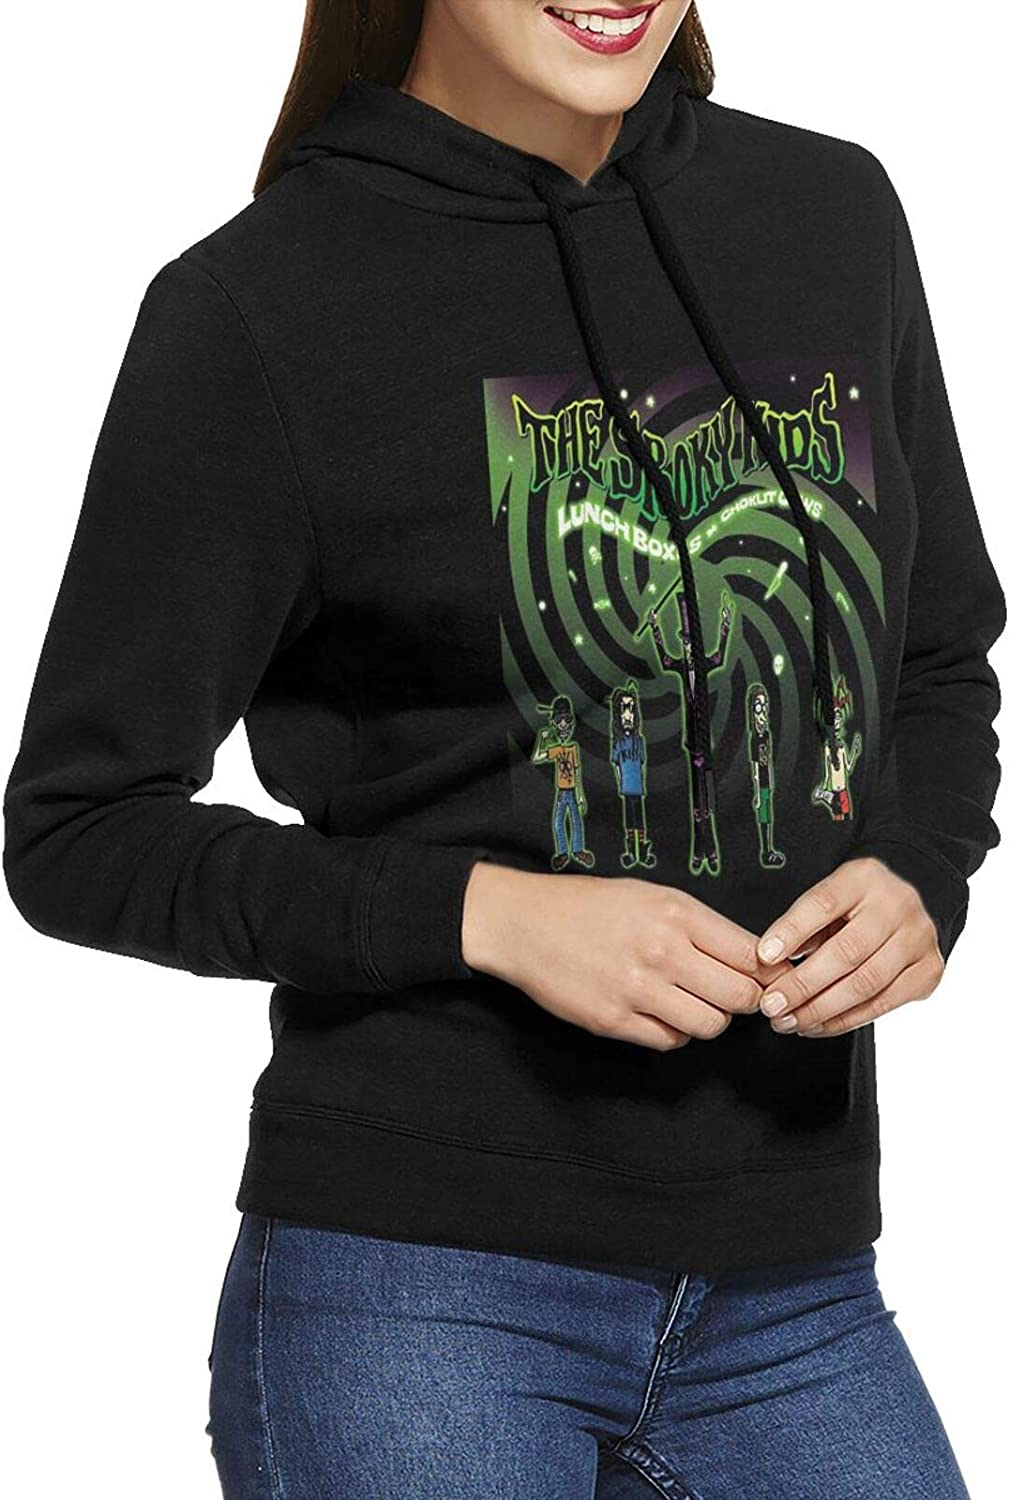 Marilyn Manson Los Angeles Mall The Spooky Hoodie Sweatshirts Over item handling Casual Cotto Female